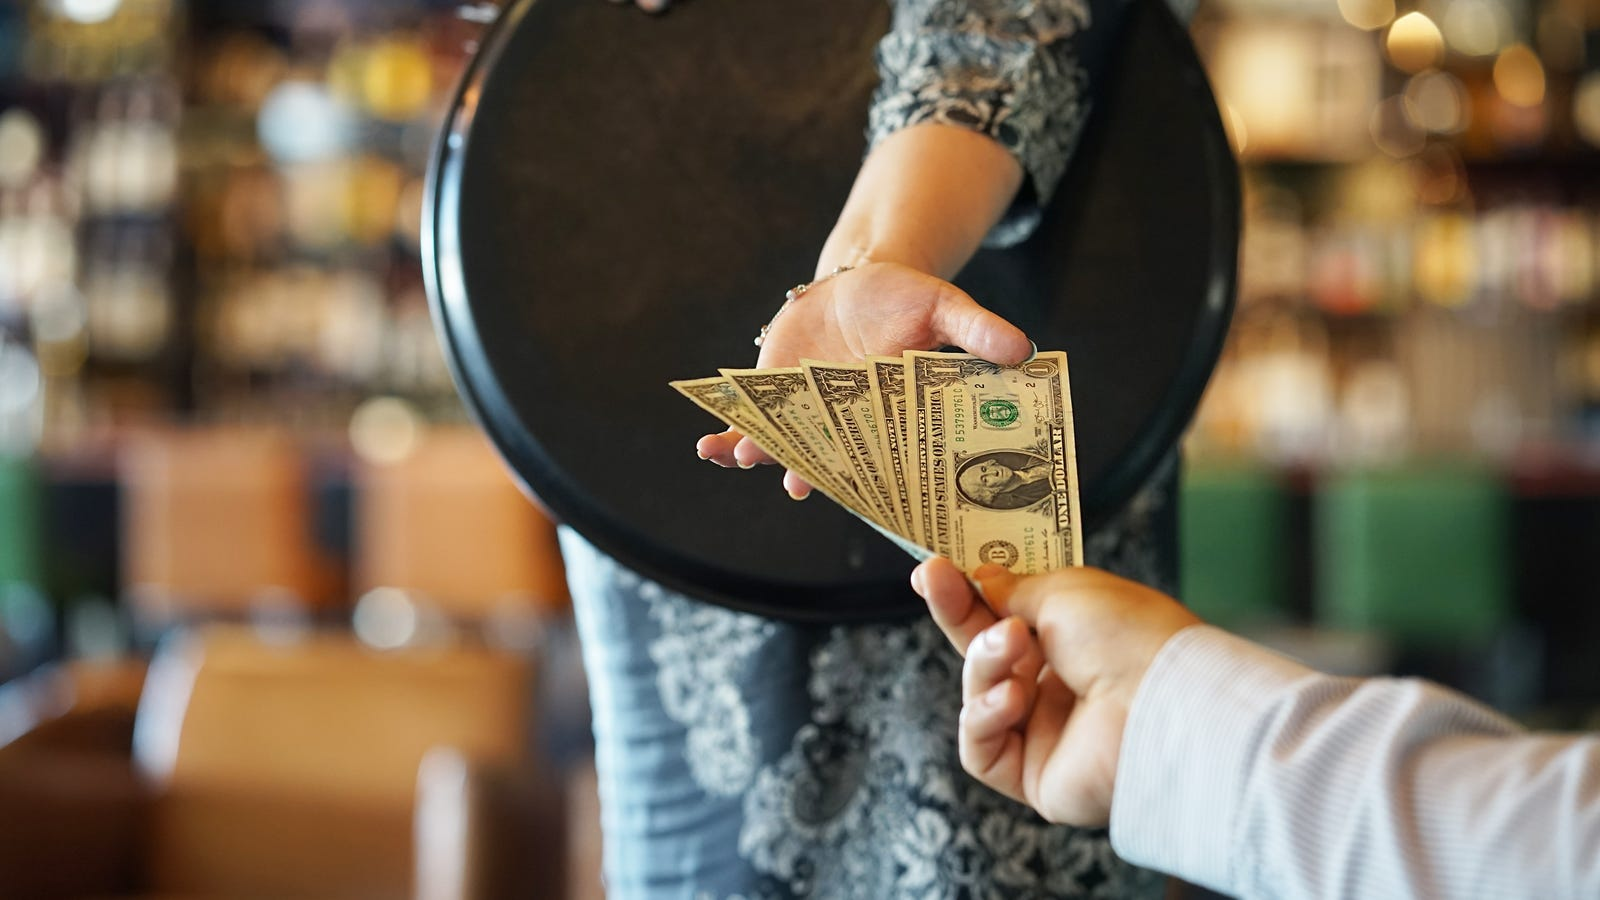 Ask The Salty Waitress: How can I make sure my server gets my tip?